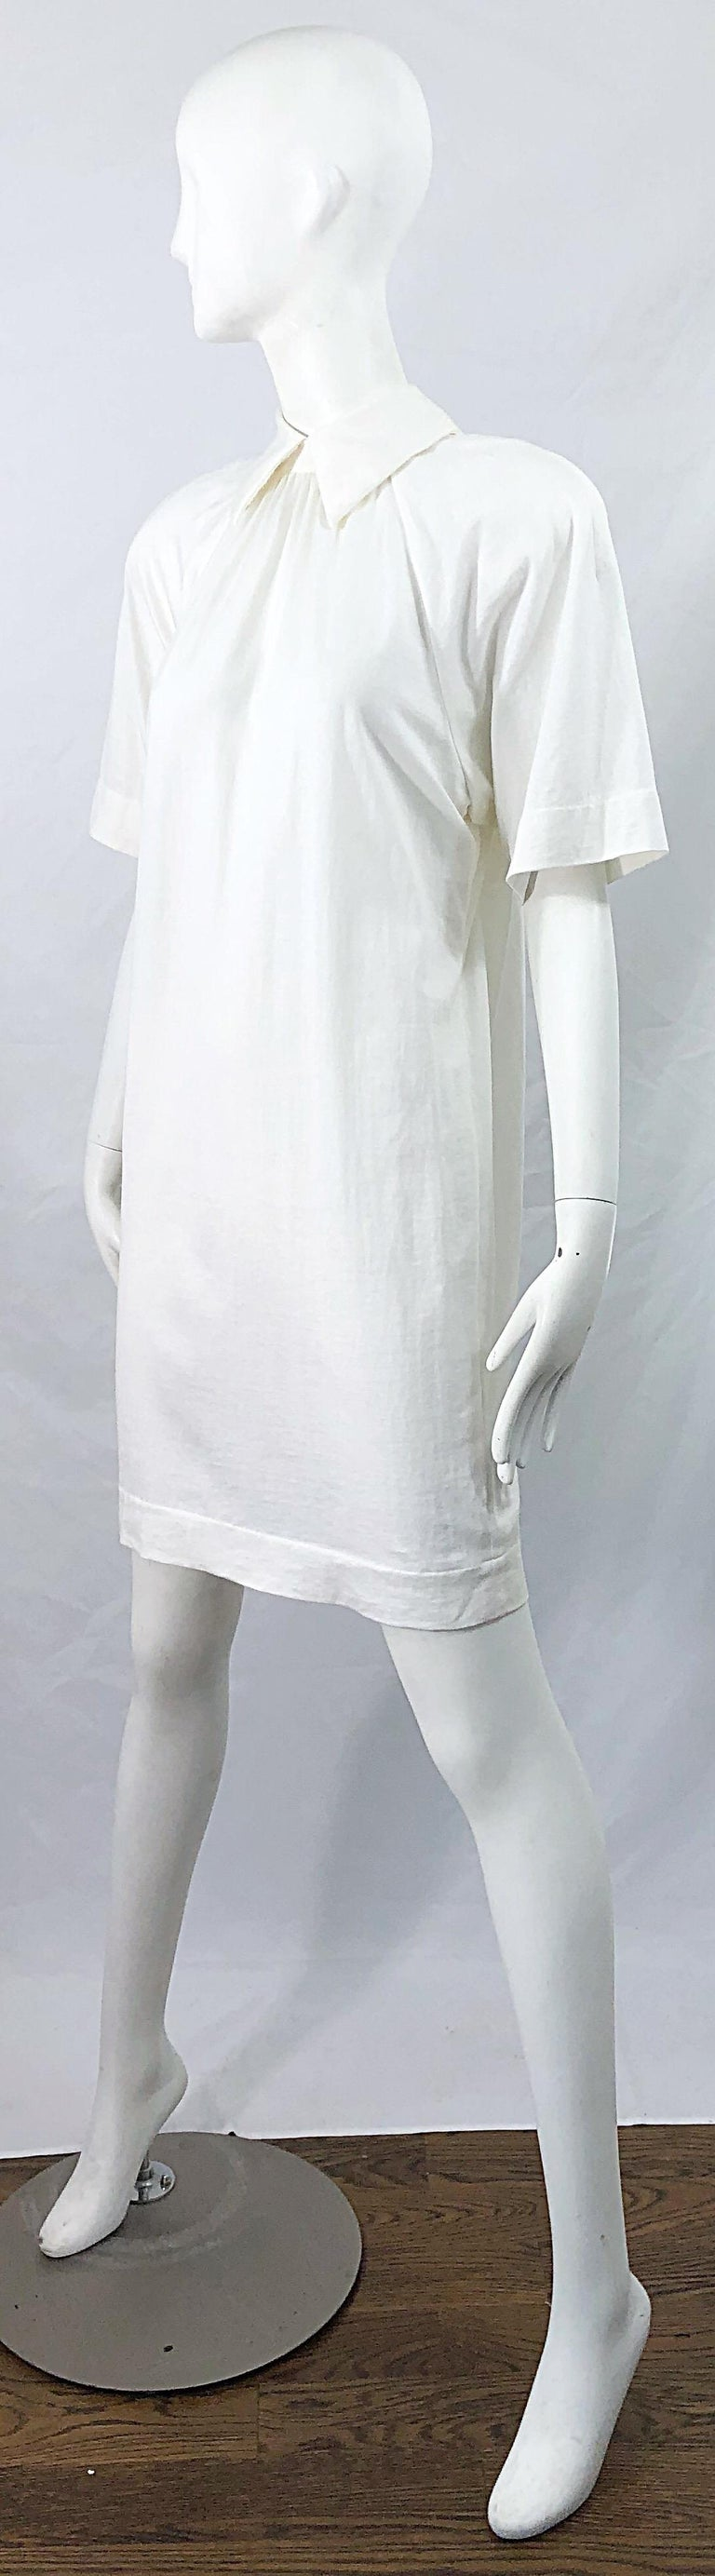 1990s James Purcell Size 6 / 8 White Cotton Vintage 90s T-Shirt Dress For Sale 9